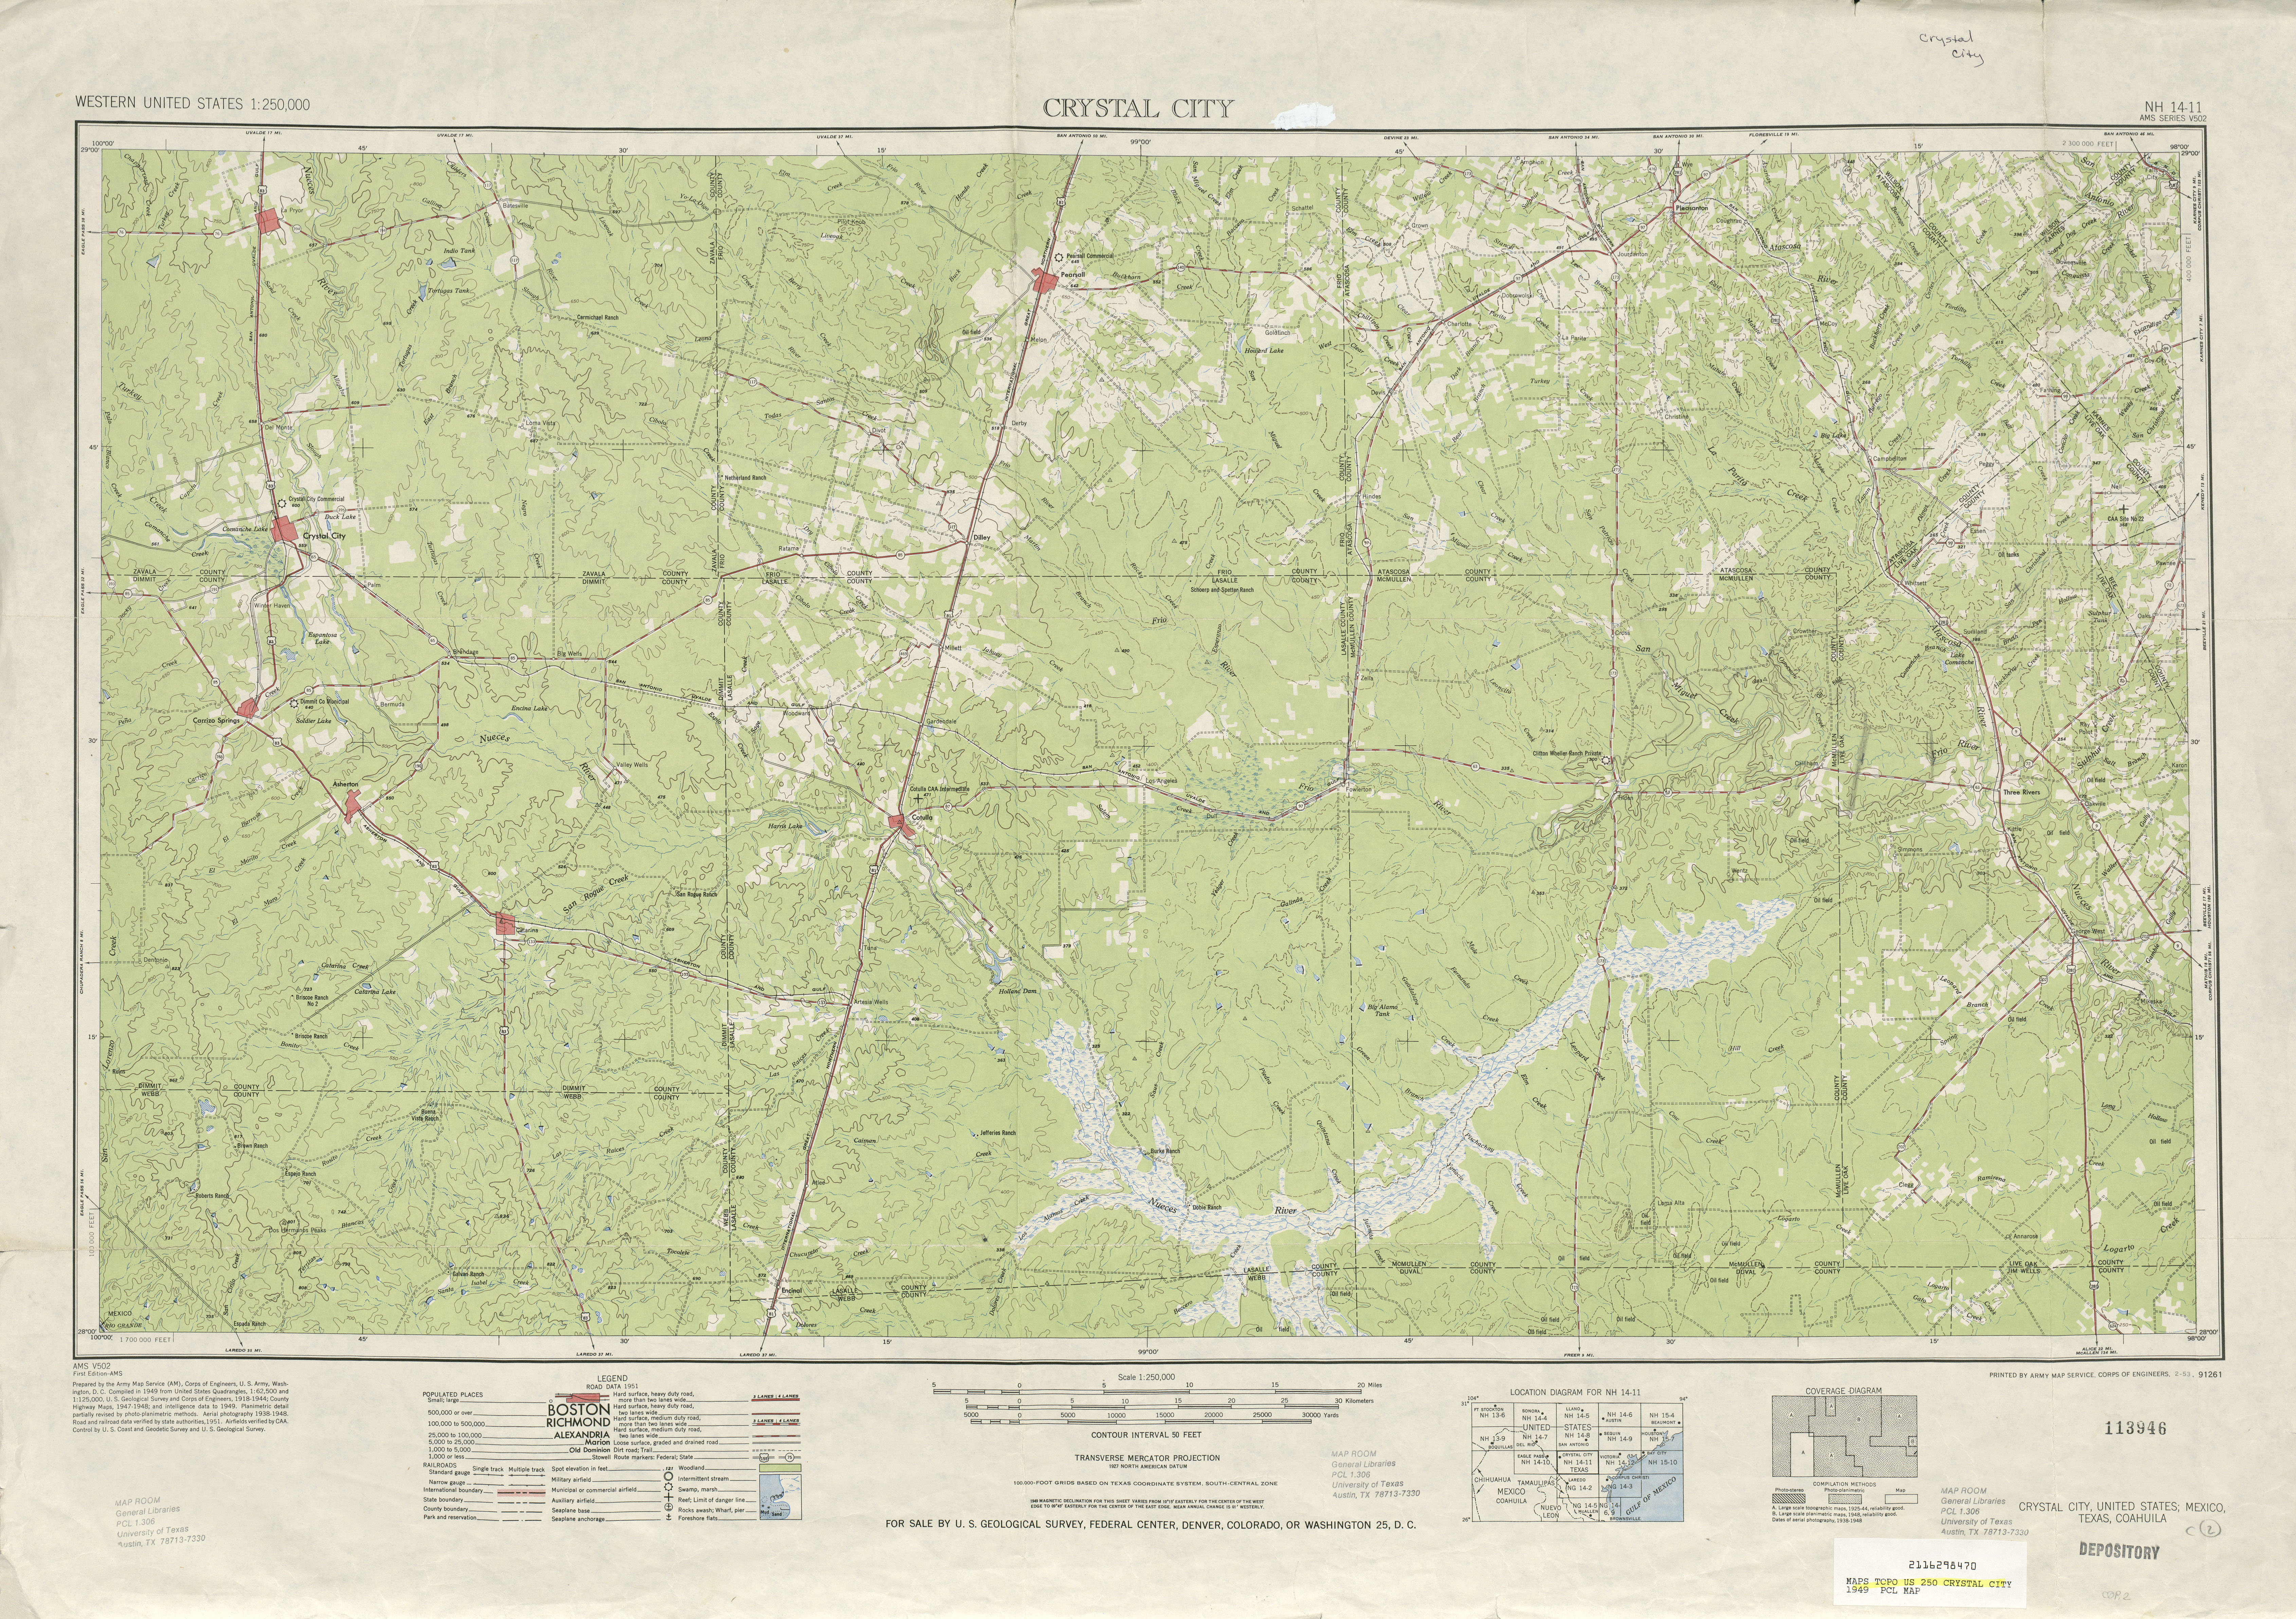 Crystal City Topographic Map Sheet, United States 1949